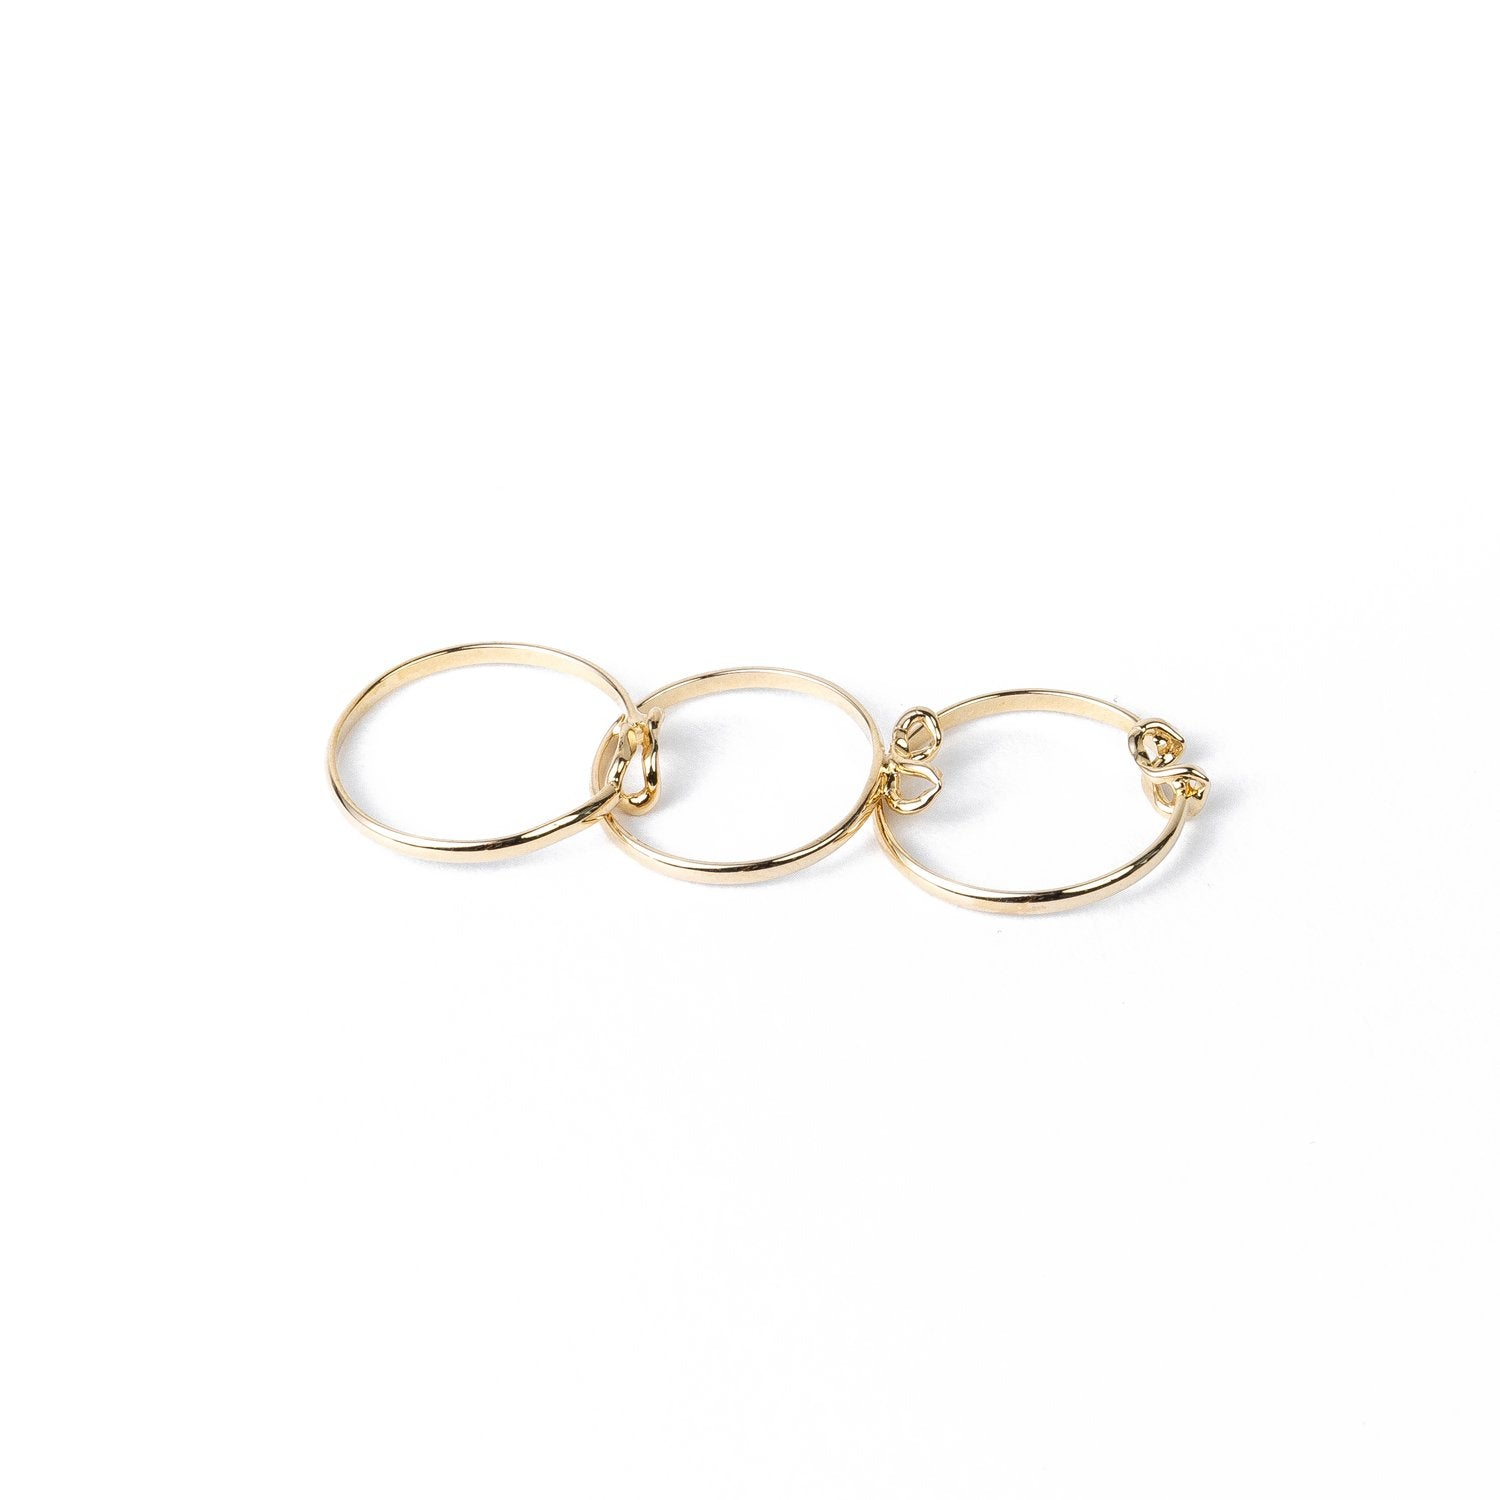 Willow Ring Style II in 14k Yellow Gold